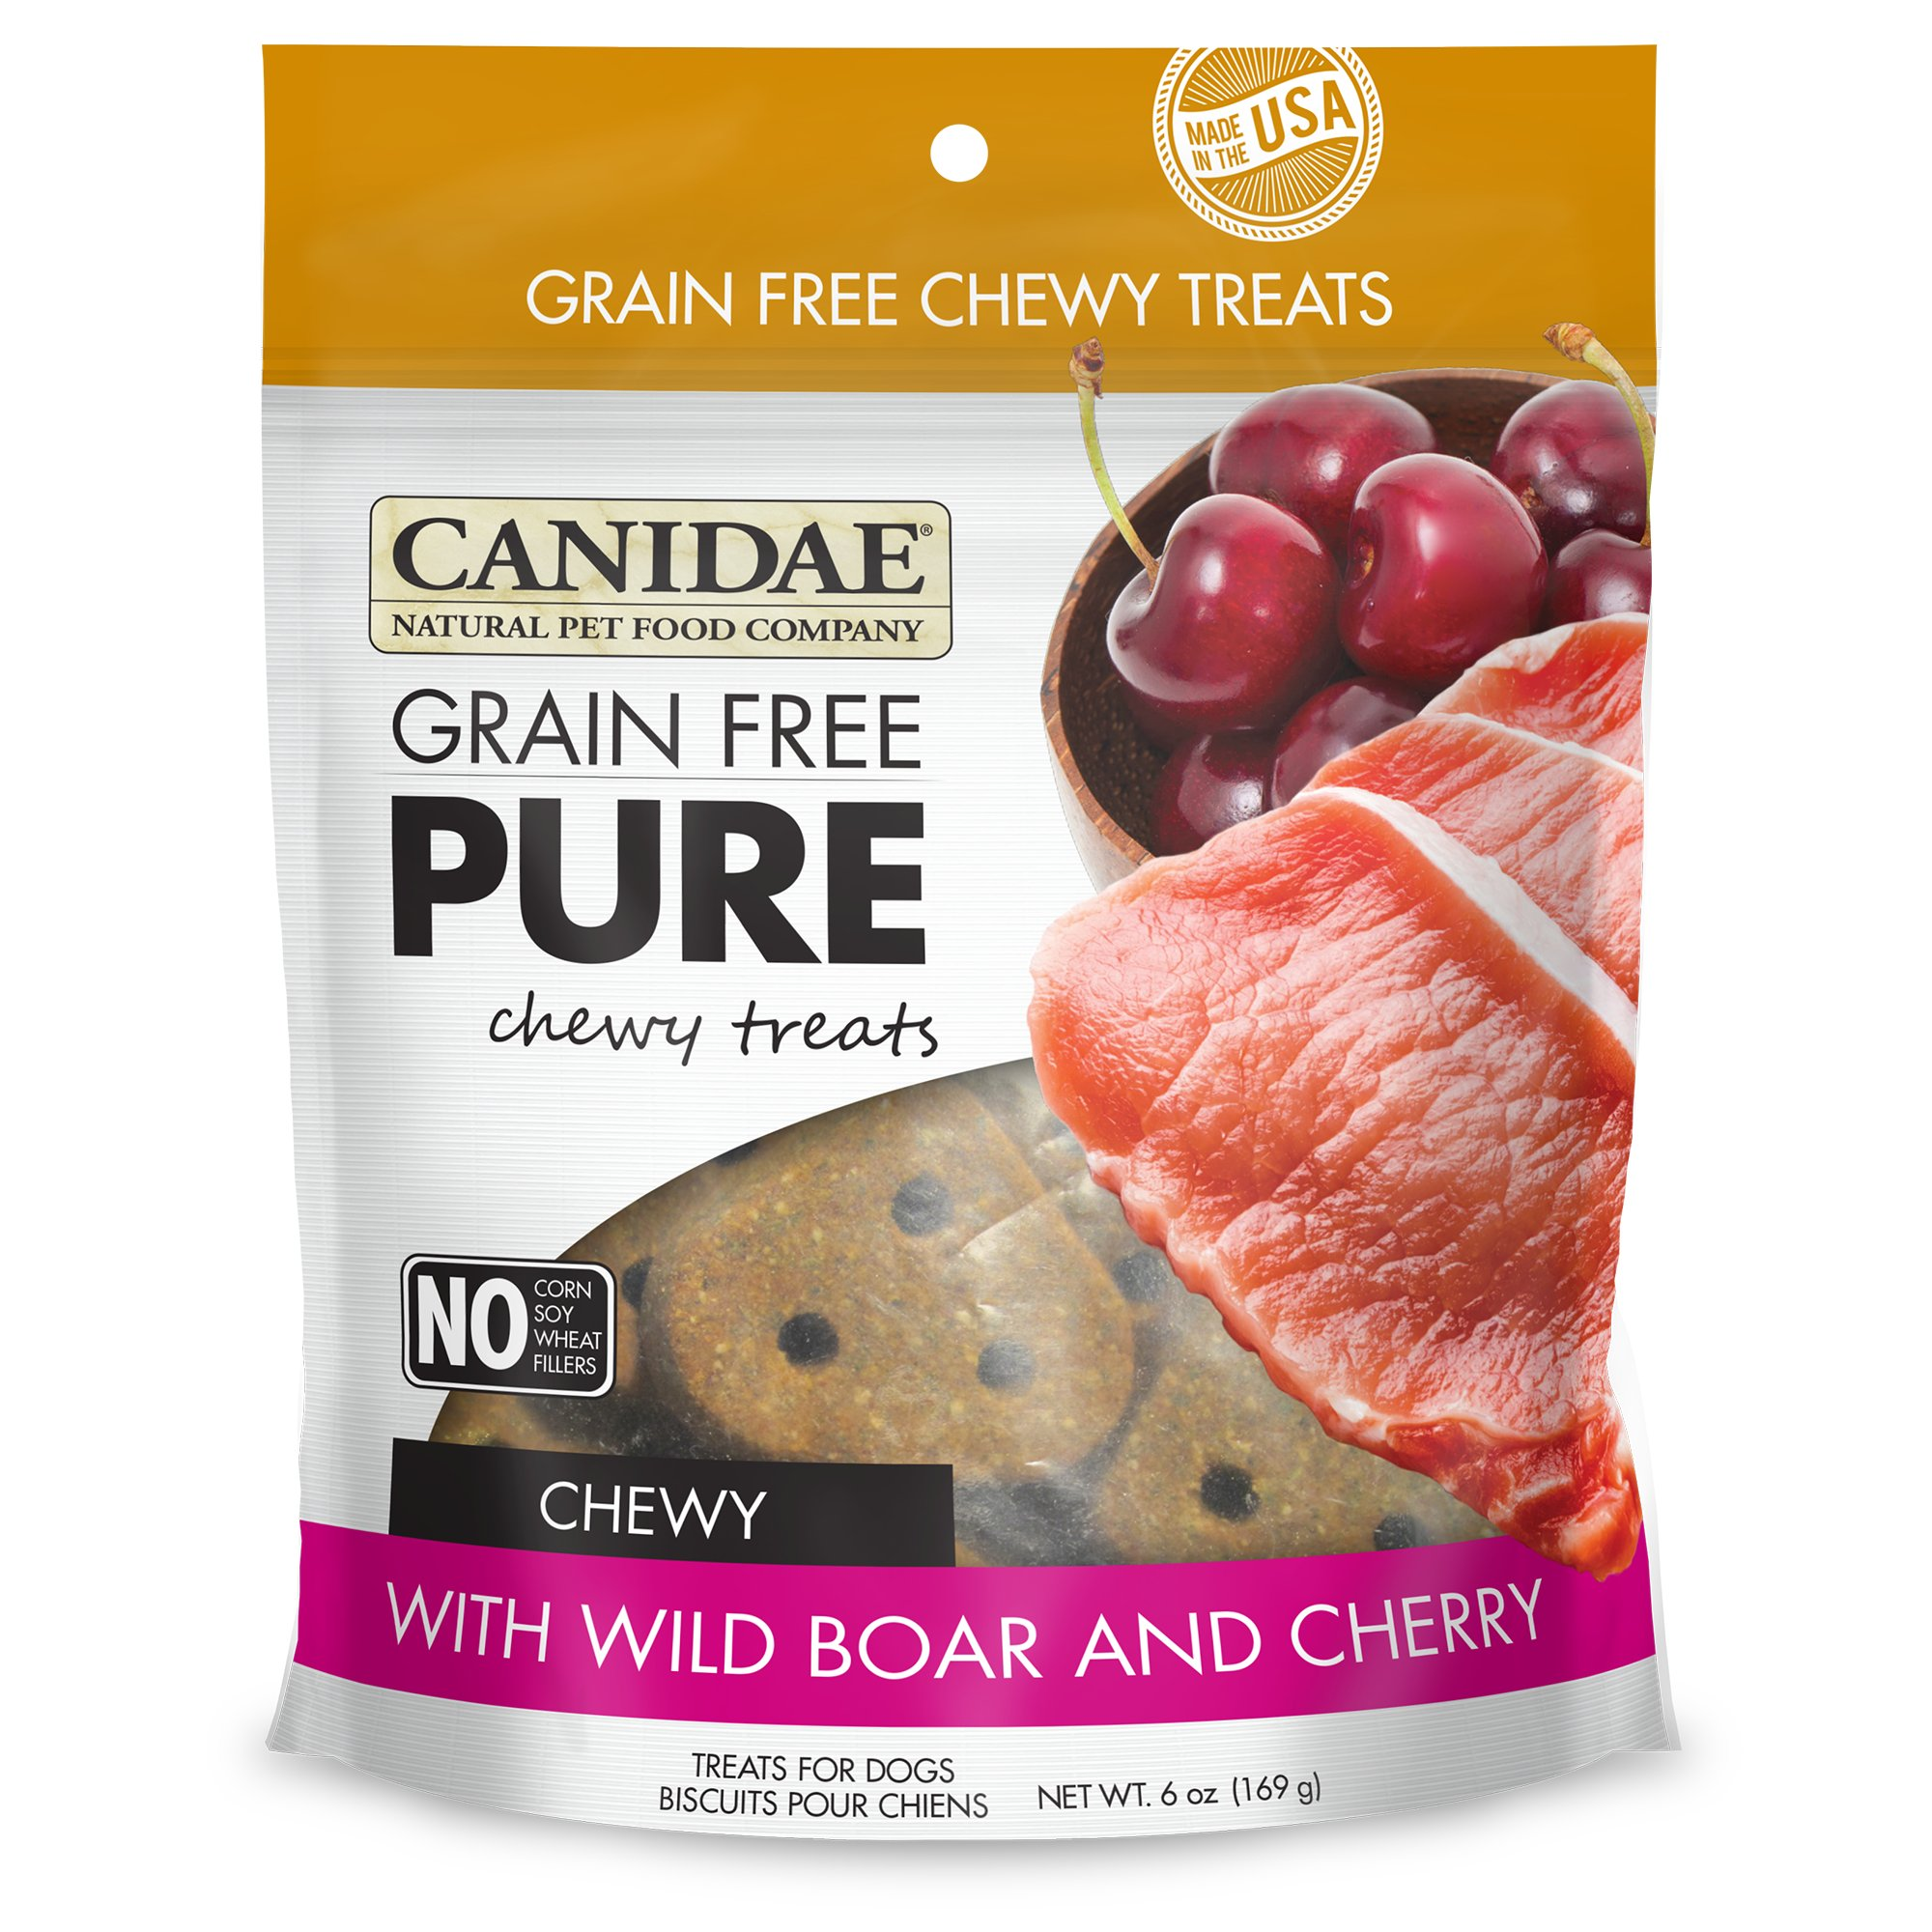 Canidae Grain Free Pure Wild Boar & Cherry Chewy Dog Treats